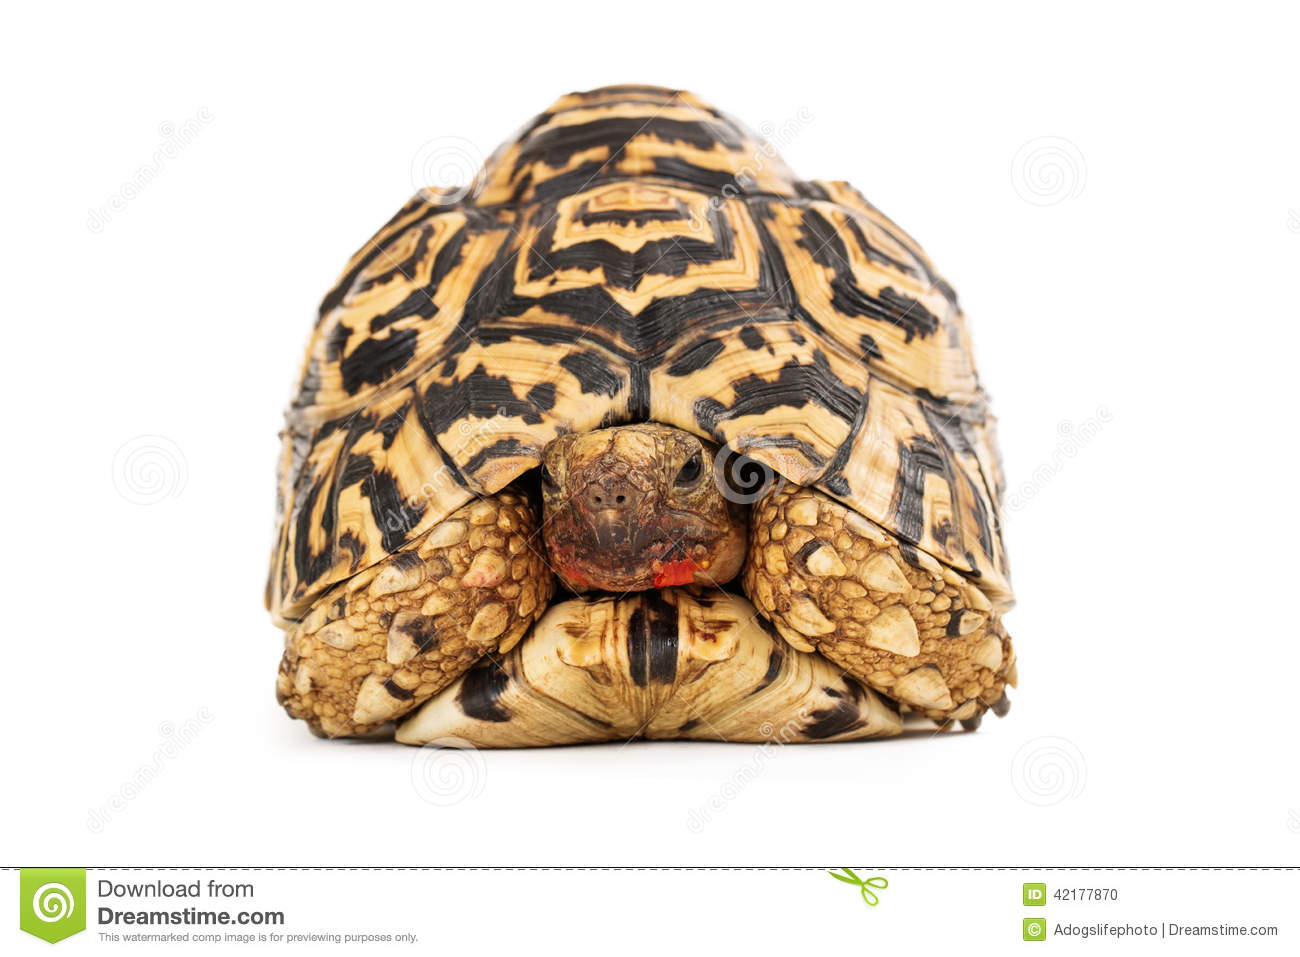 Leopard Tortoise clipart #5, Download drawings